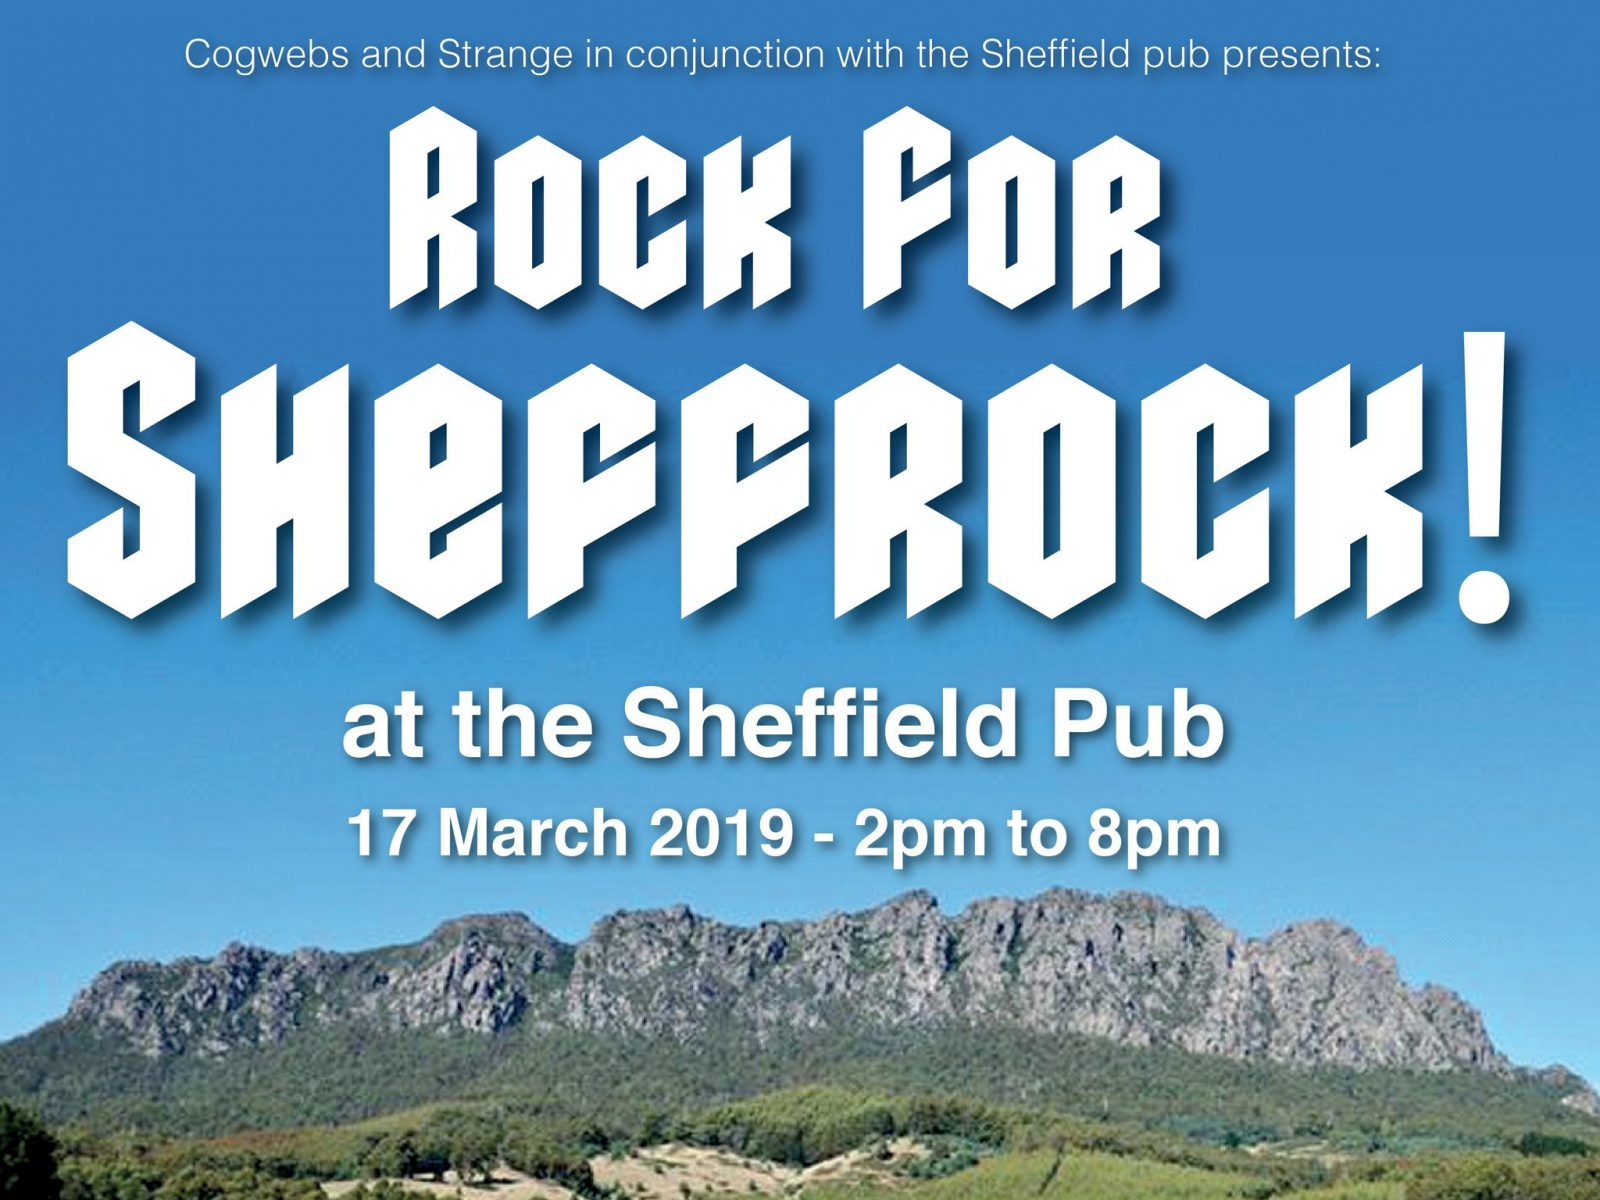 Rock for Sheffrock at the Sheffield Pub 17 March 2019 - 2pm to 8pm